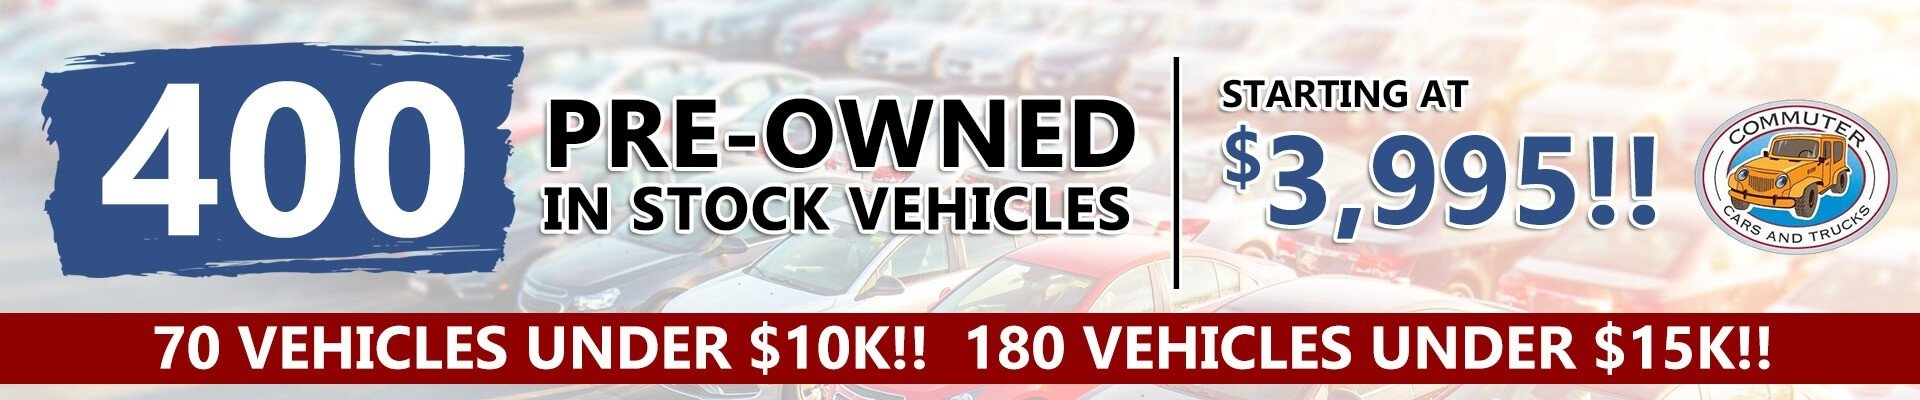 Kbb Ico Spring S Event 400 Pre Owned In Stock Vehicles